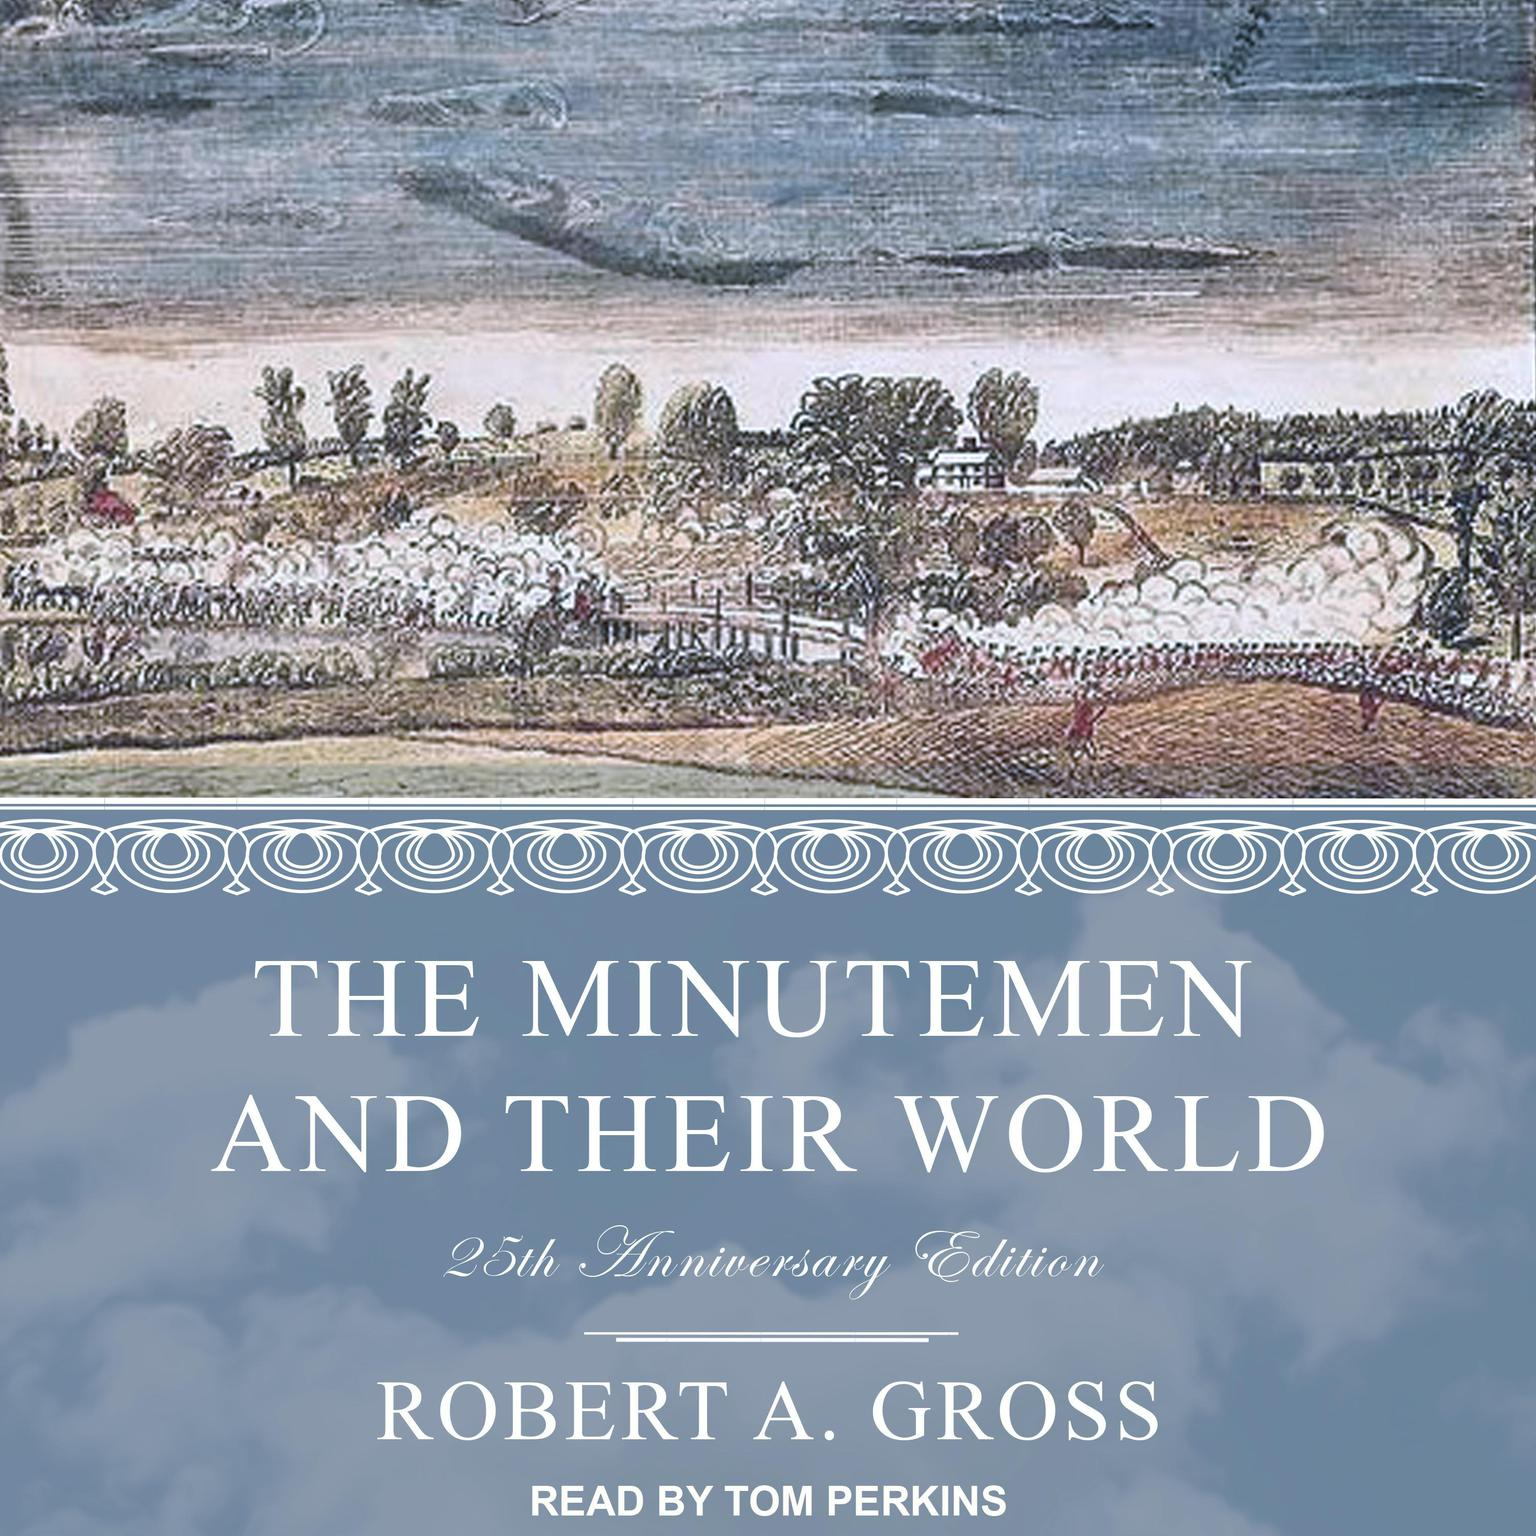 Printable The Minutemen and Their World: 25th anniversary edition Audiobook Cover Art